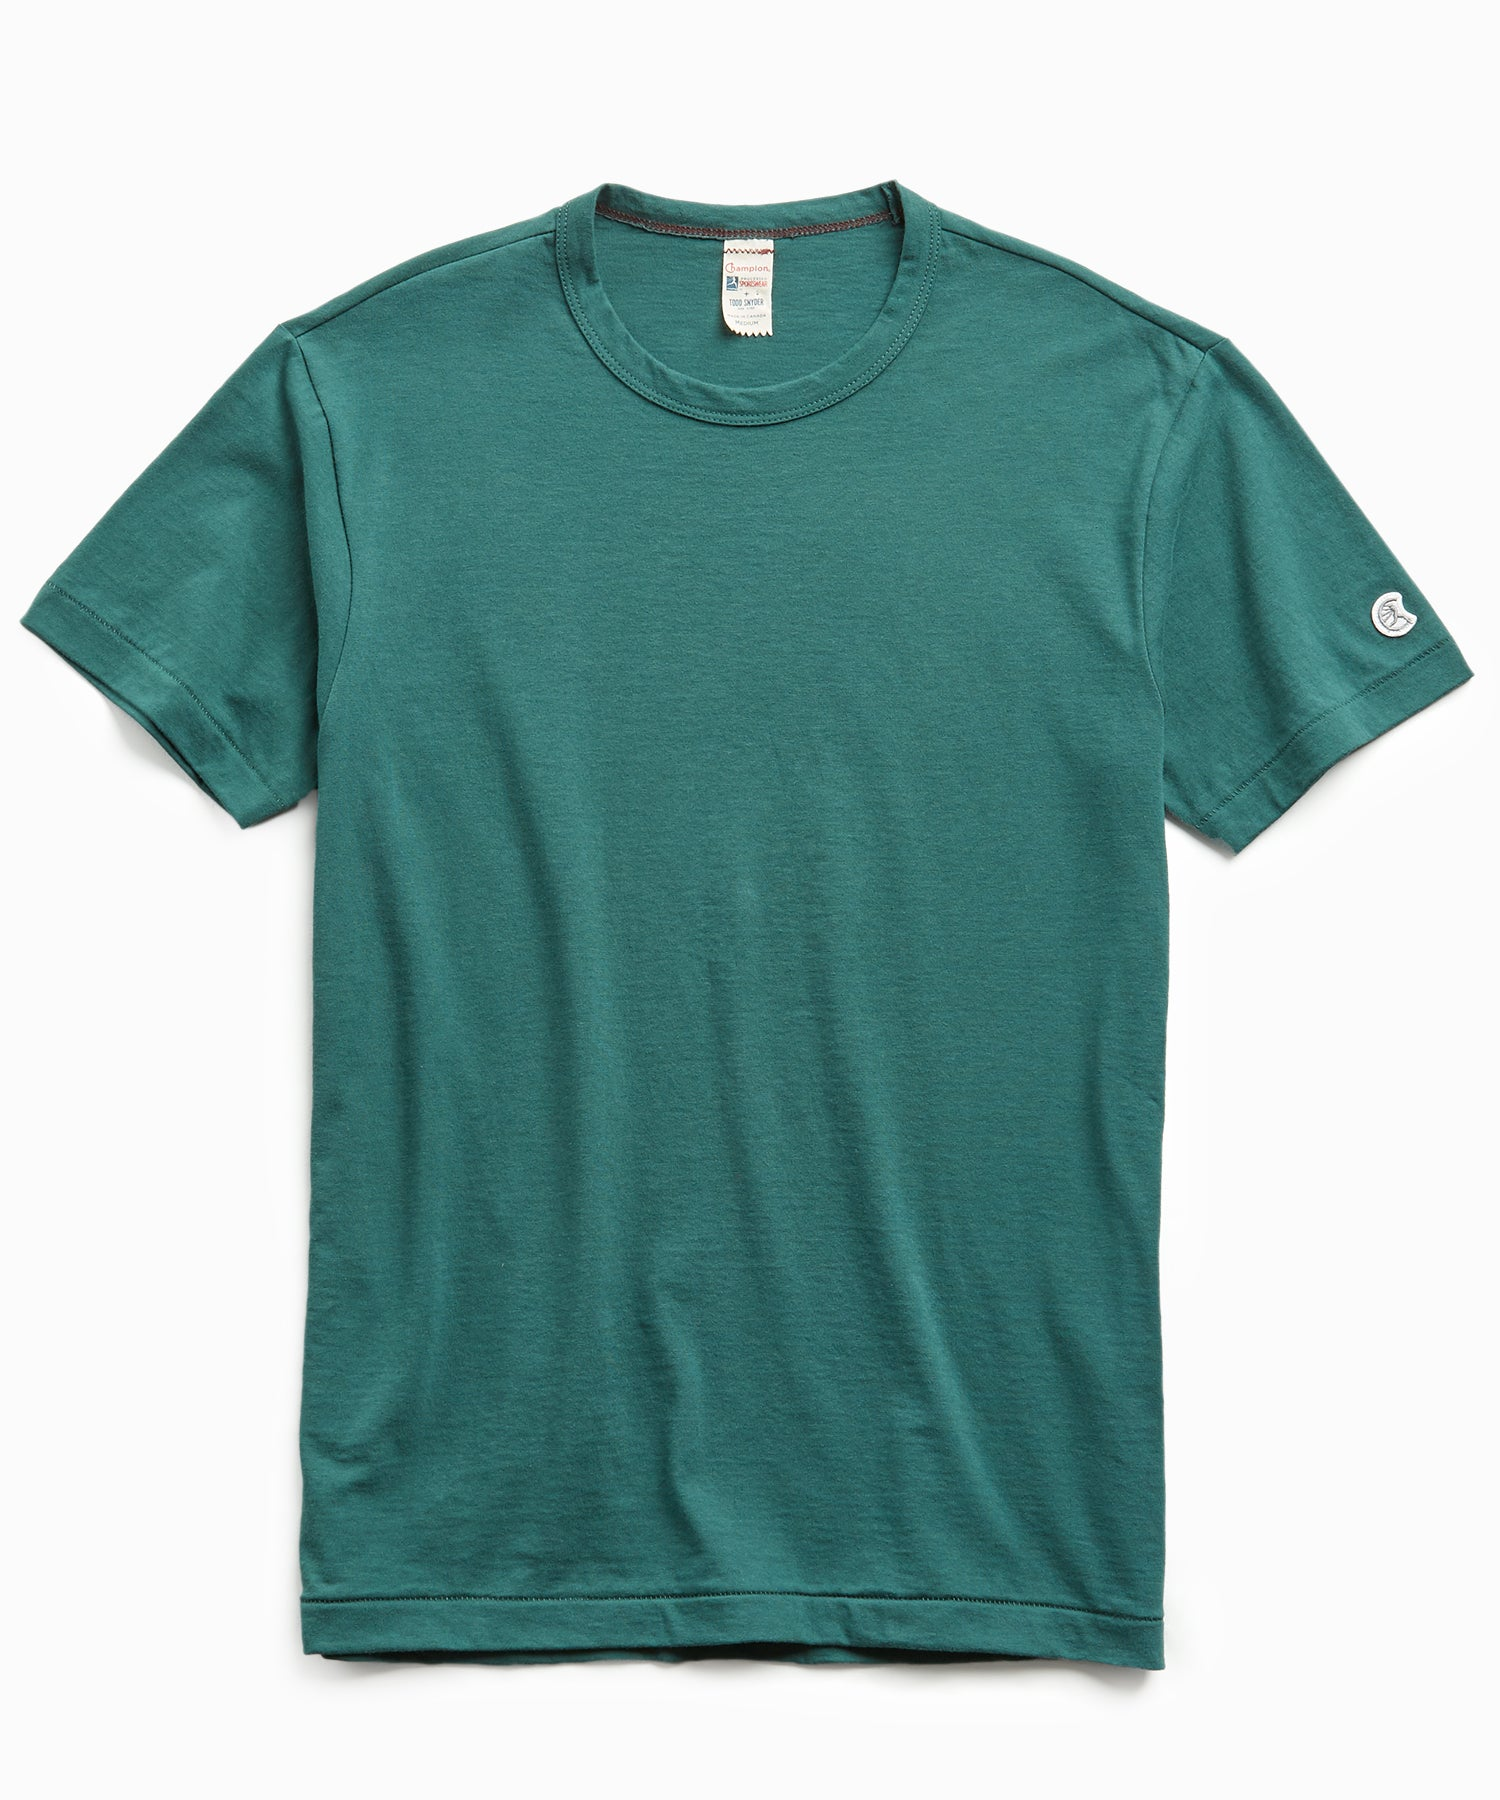 Champion Basic Jersey Tee in Storm Green